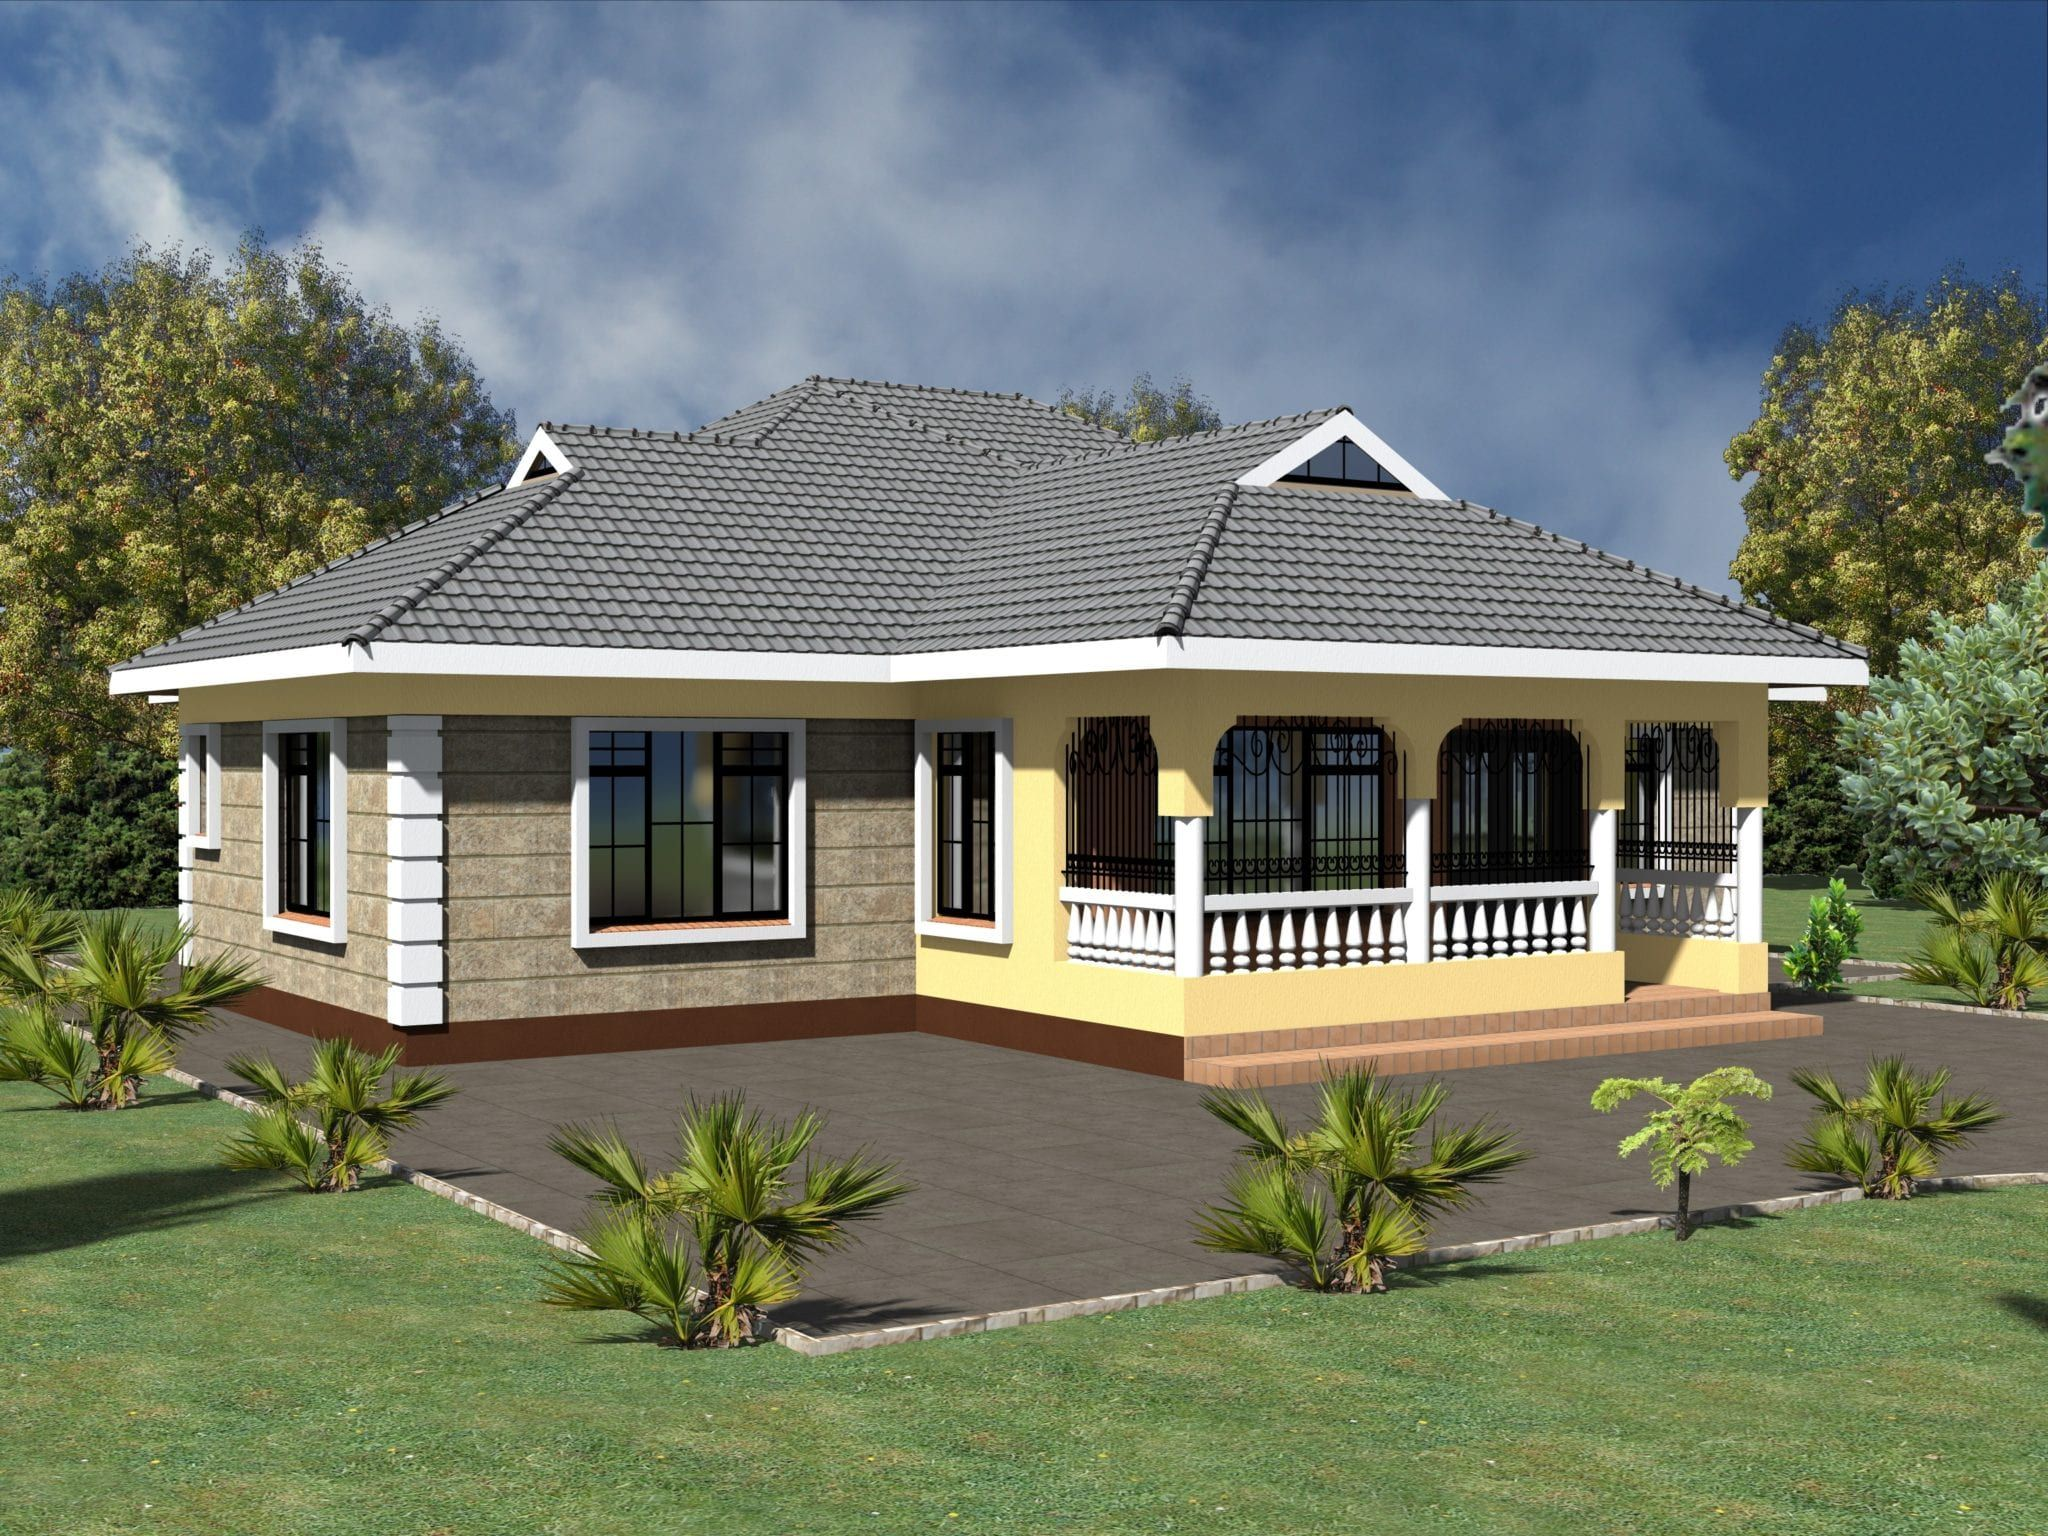 Simple 3 Bedroom House Plans Without Garage Hpd Consult House Designs In Kenya Modern Bungalow House Bungalow House Design